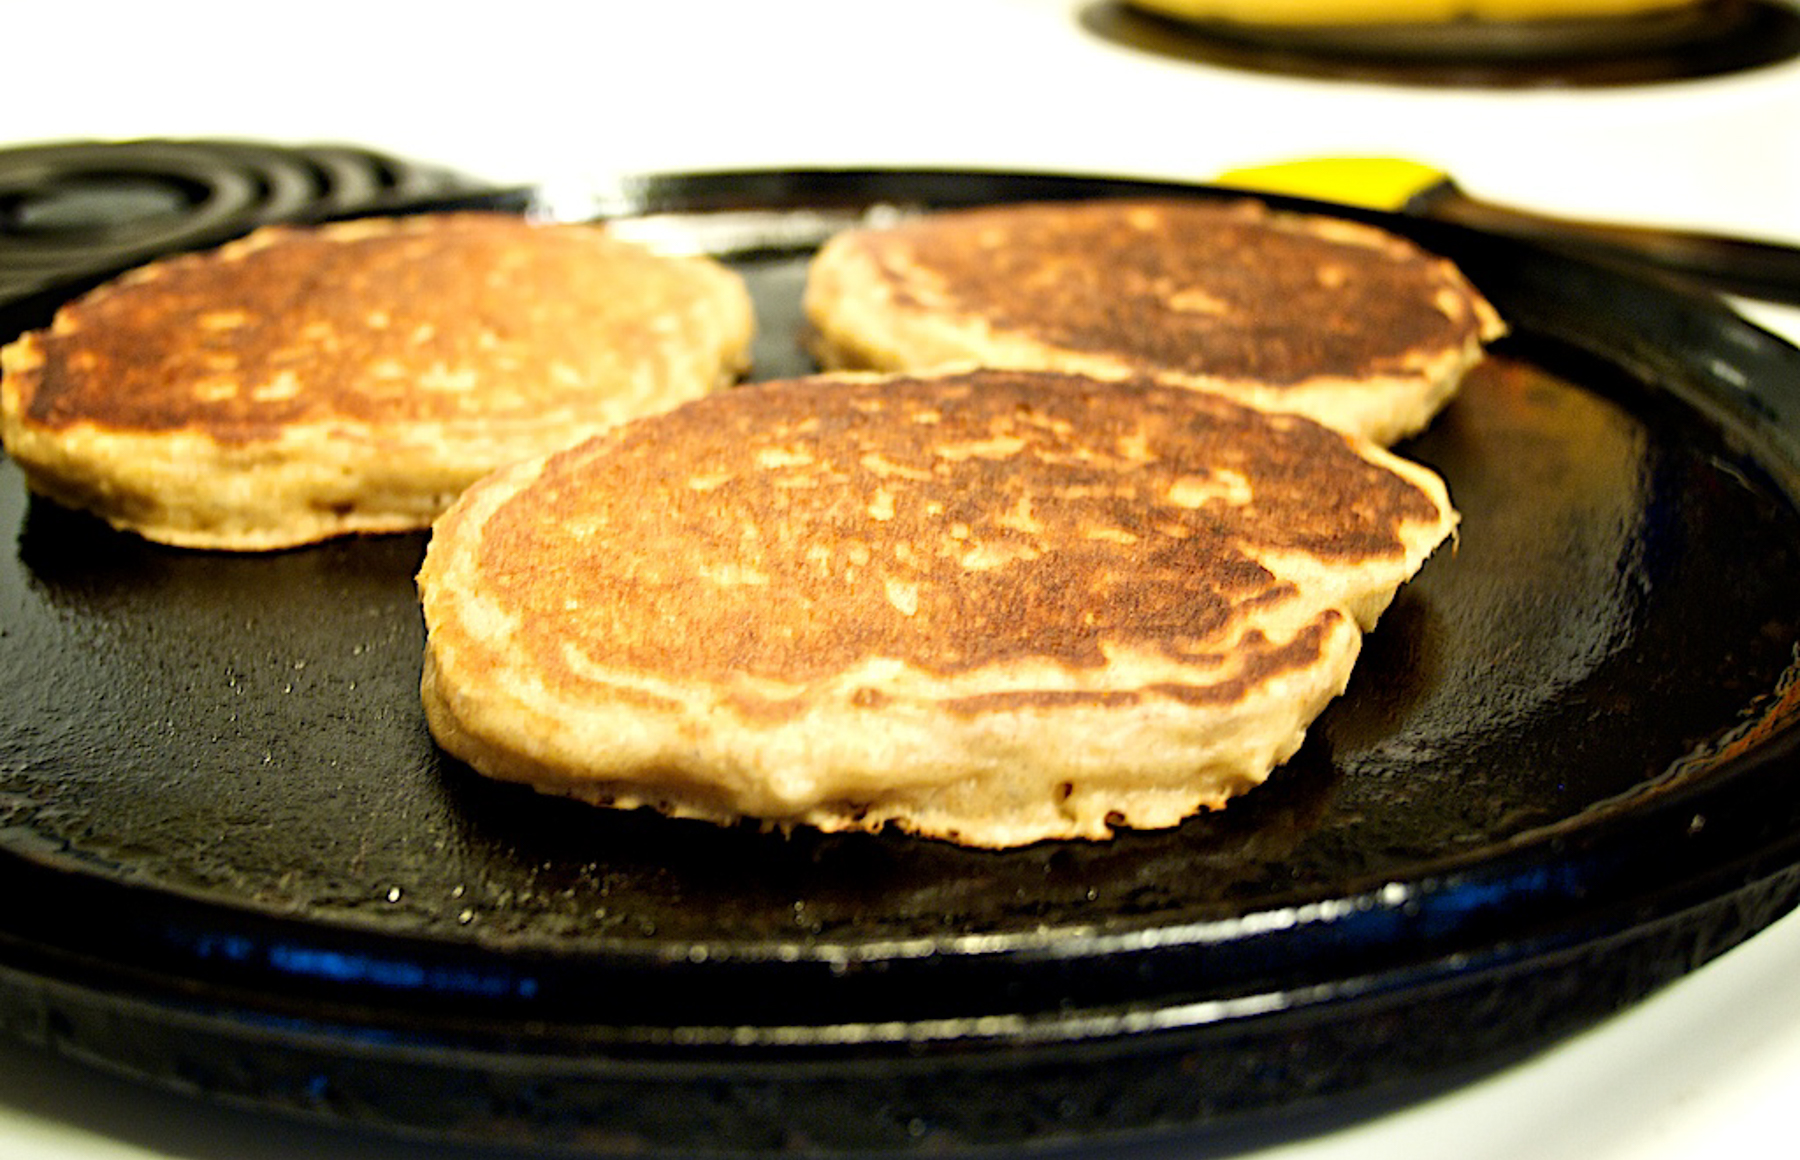 Classic and convenient: An ode to boxed pancake mix